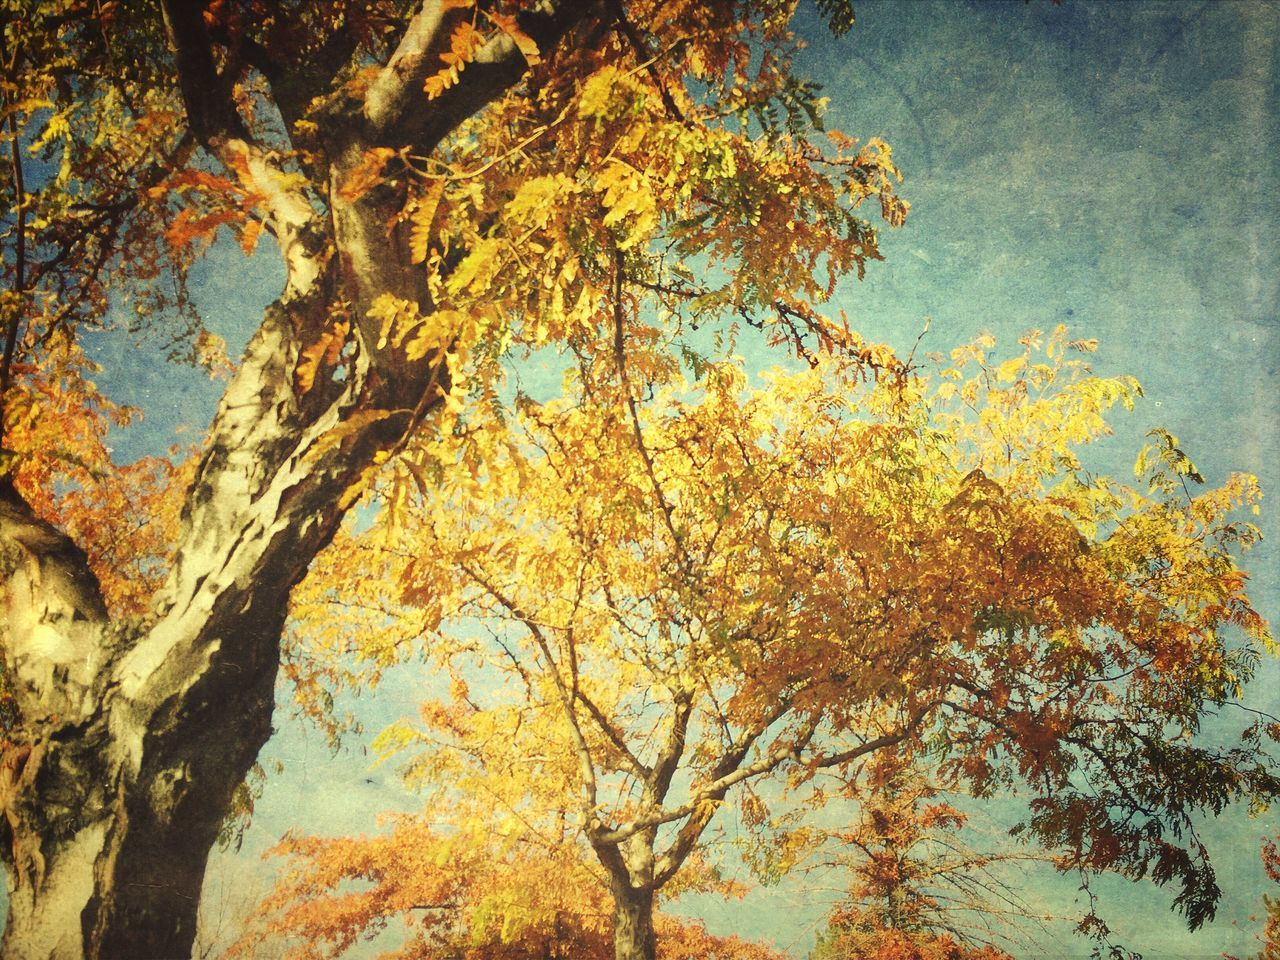 Afternoon delight. Iphoneonly Autumn Nature_collection Nature Trees Mextures Taking Photos Mobilephotography Photography Photo Mobile Photography EyeEm Nature Lover Check This Out